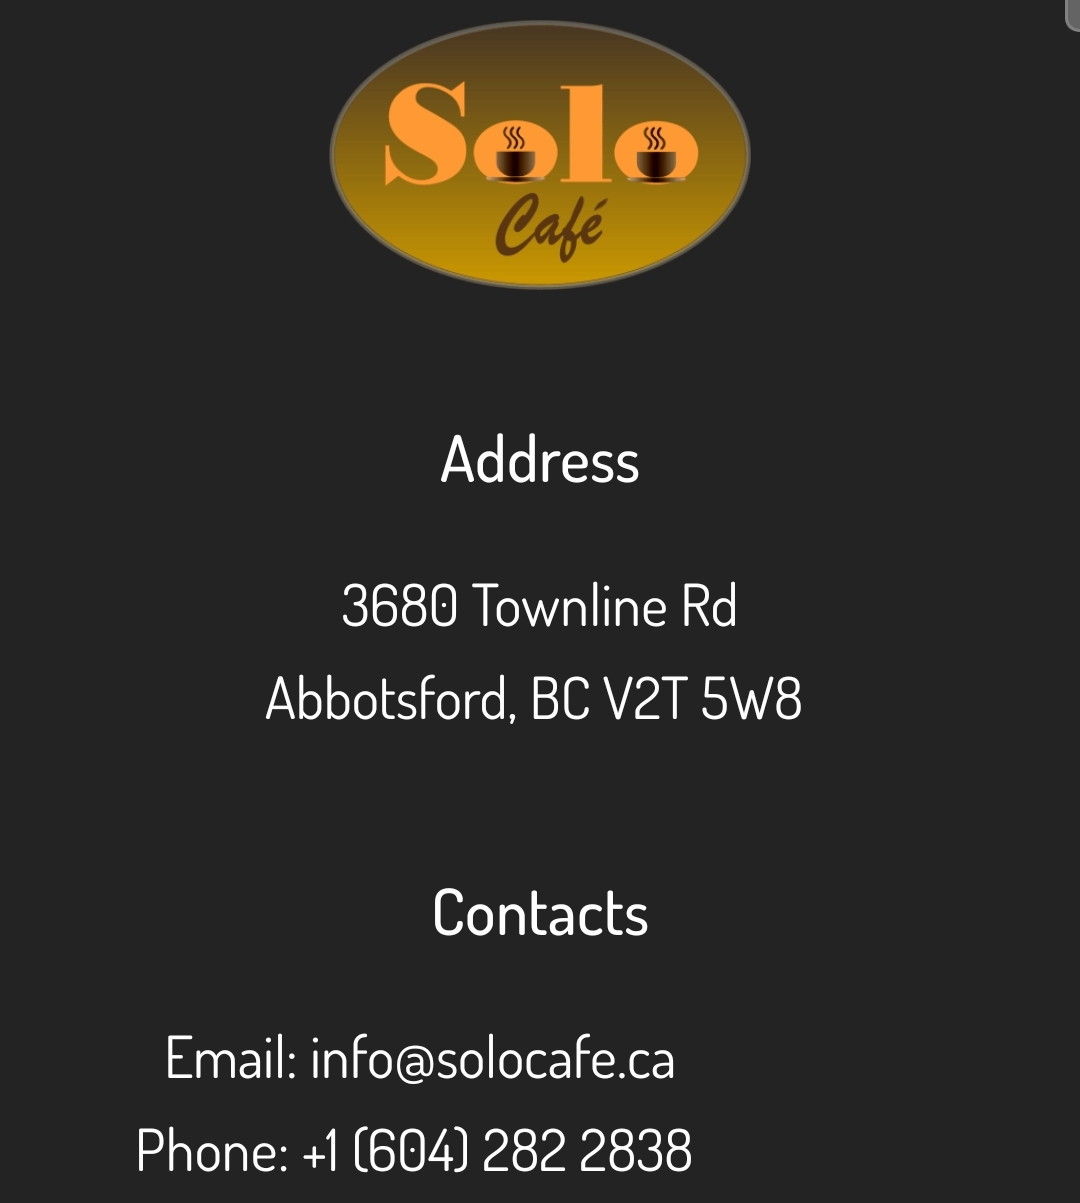 Located in Townline Road, Abbotsford B.C by the Summit Centre Arena